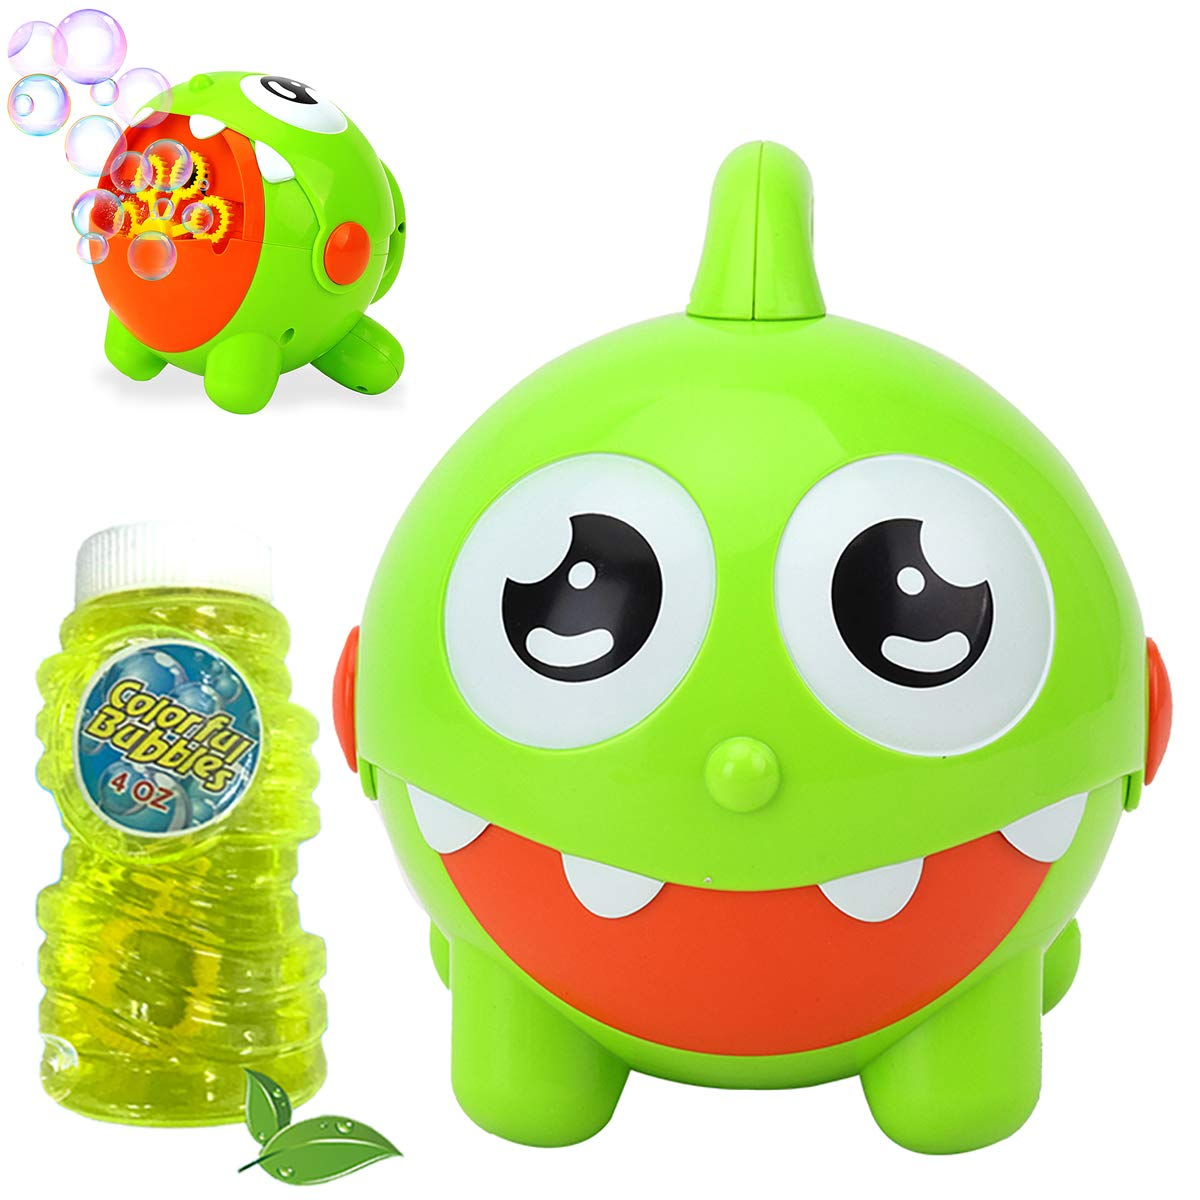 scurry Bubble Machine for Kids&Toddlers - 3000 Bubbles per Minute,Automatic Bubble Machine for Kids,Bubble Blower for Party, Outdoor & Indoor Games, Best Bubble Toy Gift for Kids,USB Charging